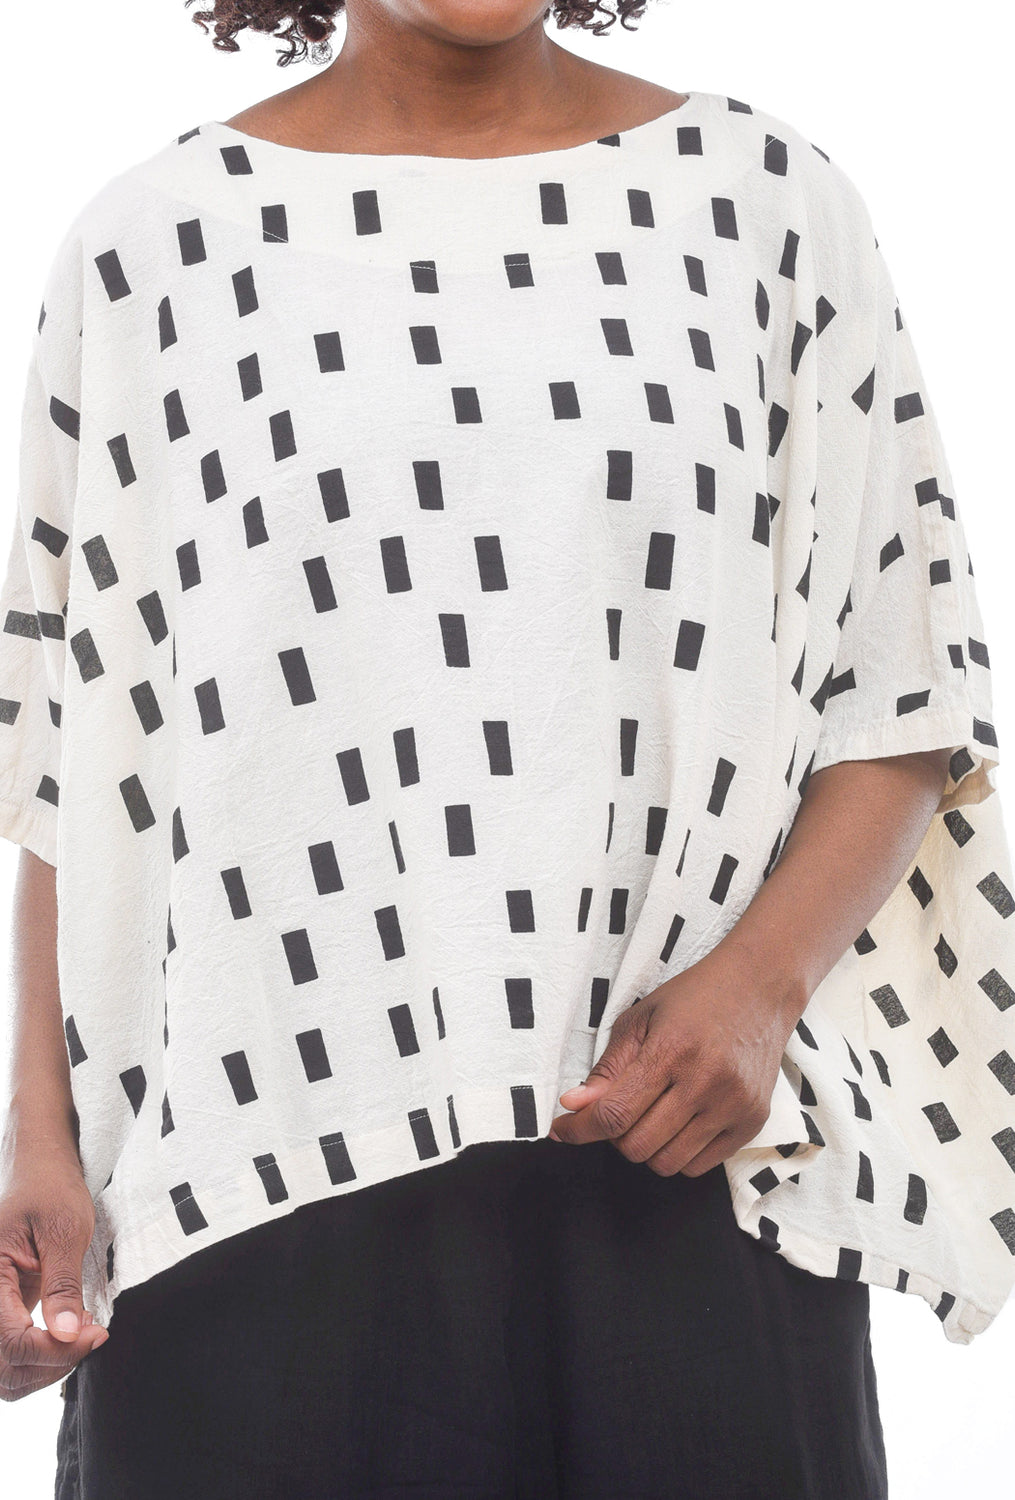 Uzi NYC Print Cube Top, Cream Disko